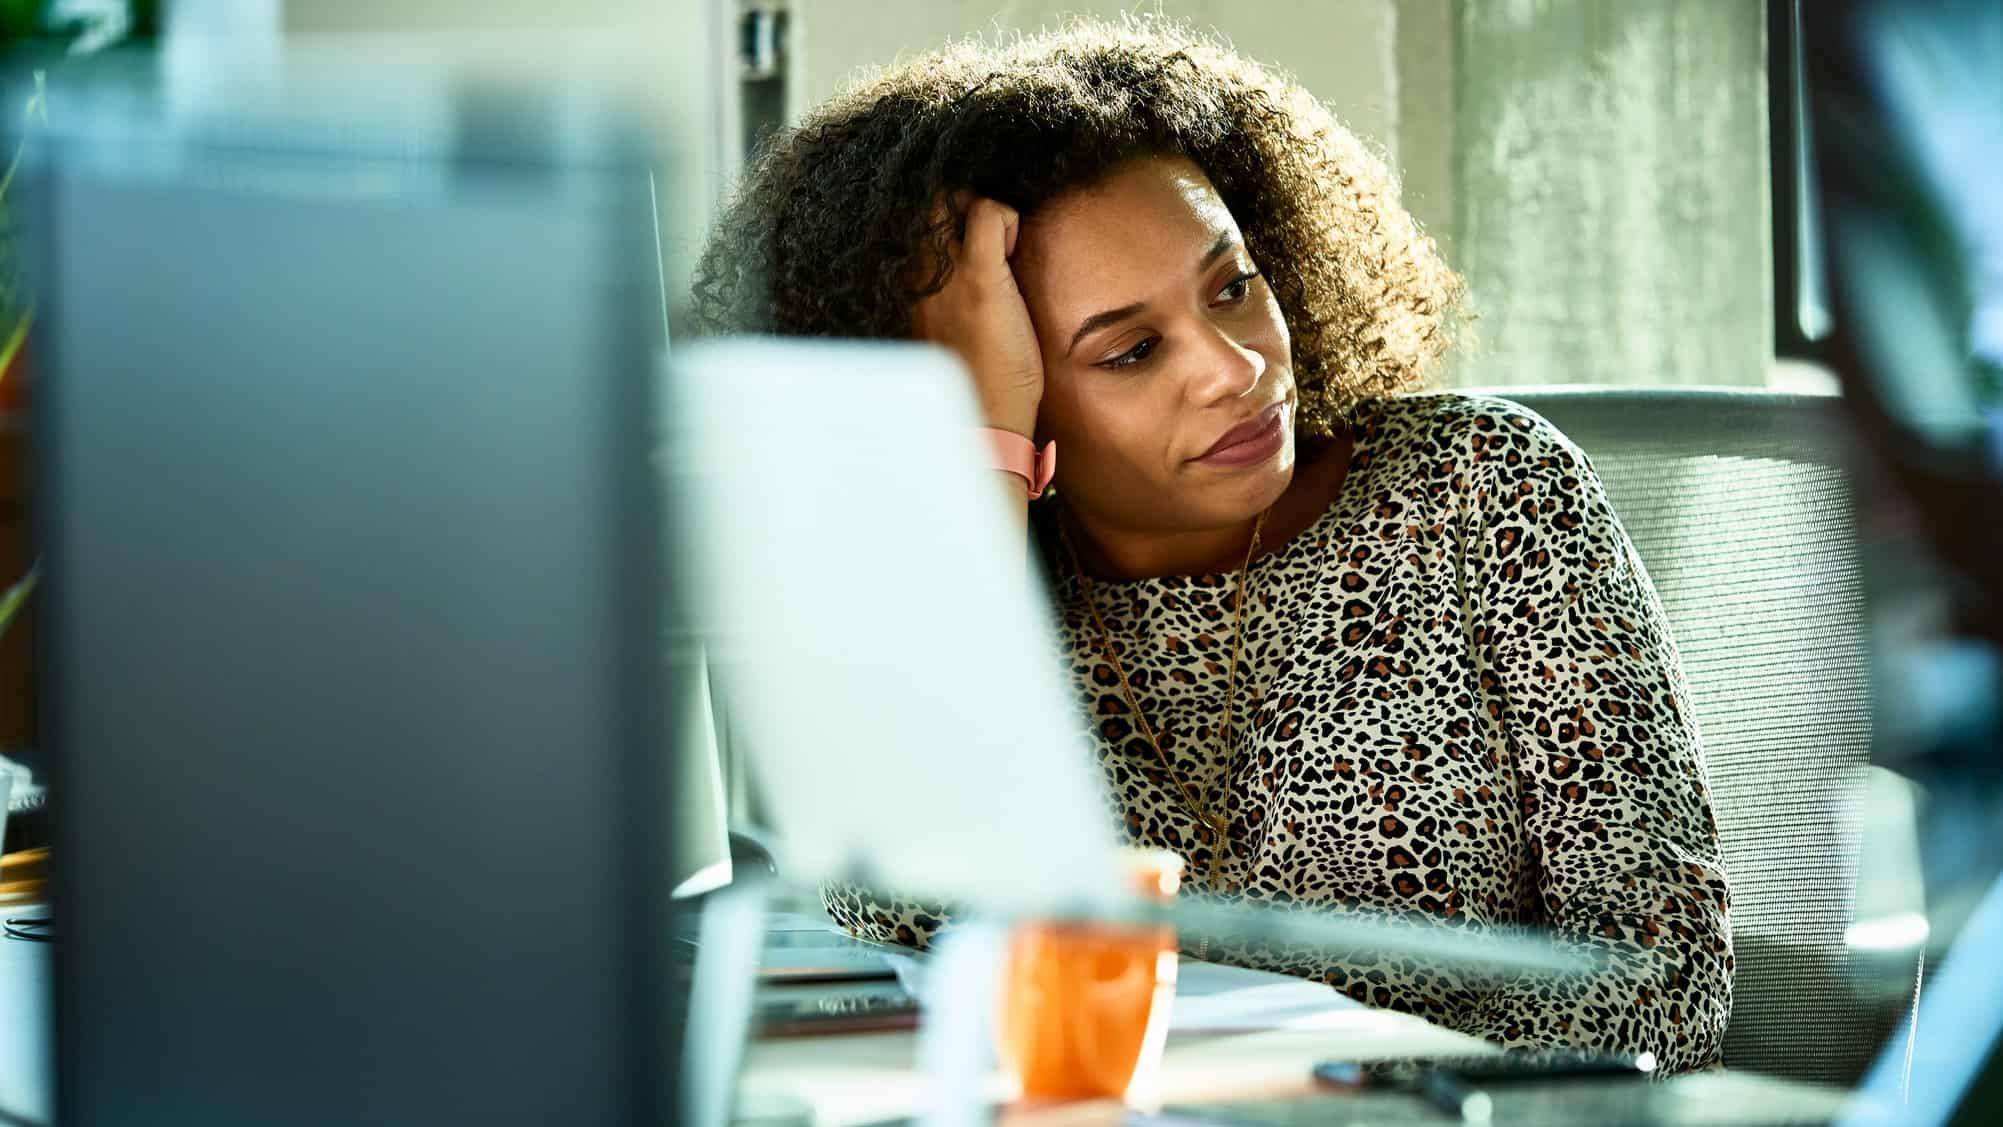 Woman with frustrated expression sits in front of a laptop